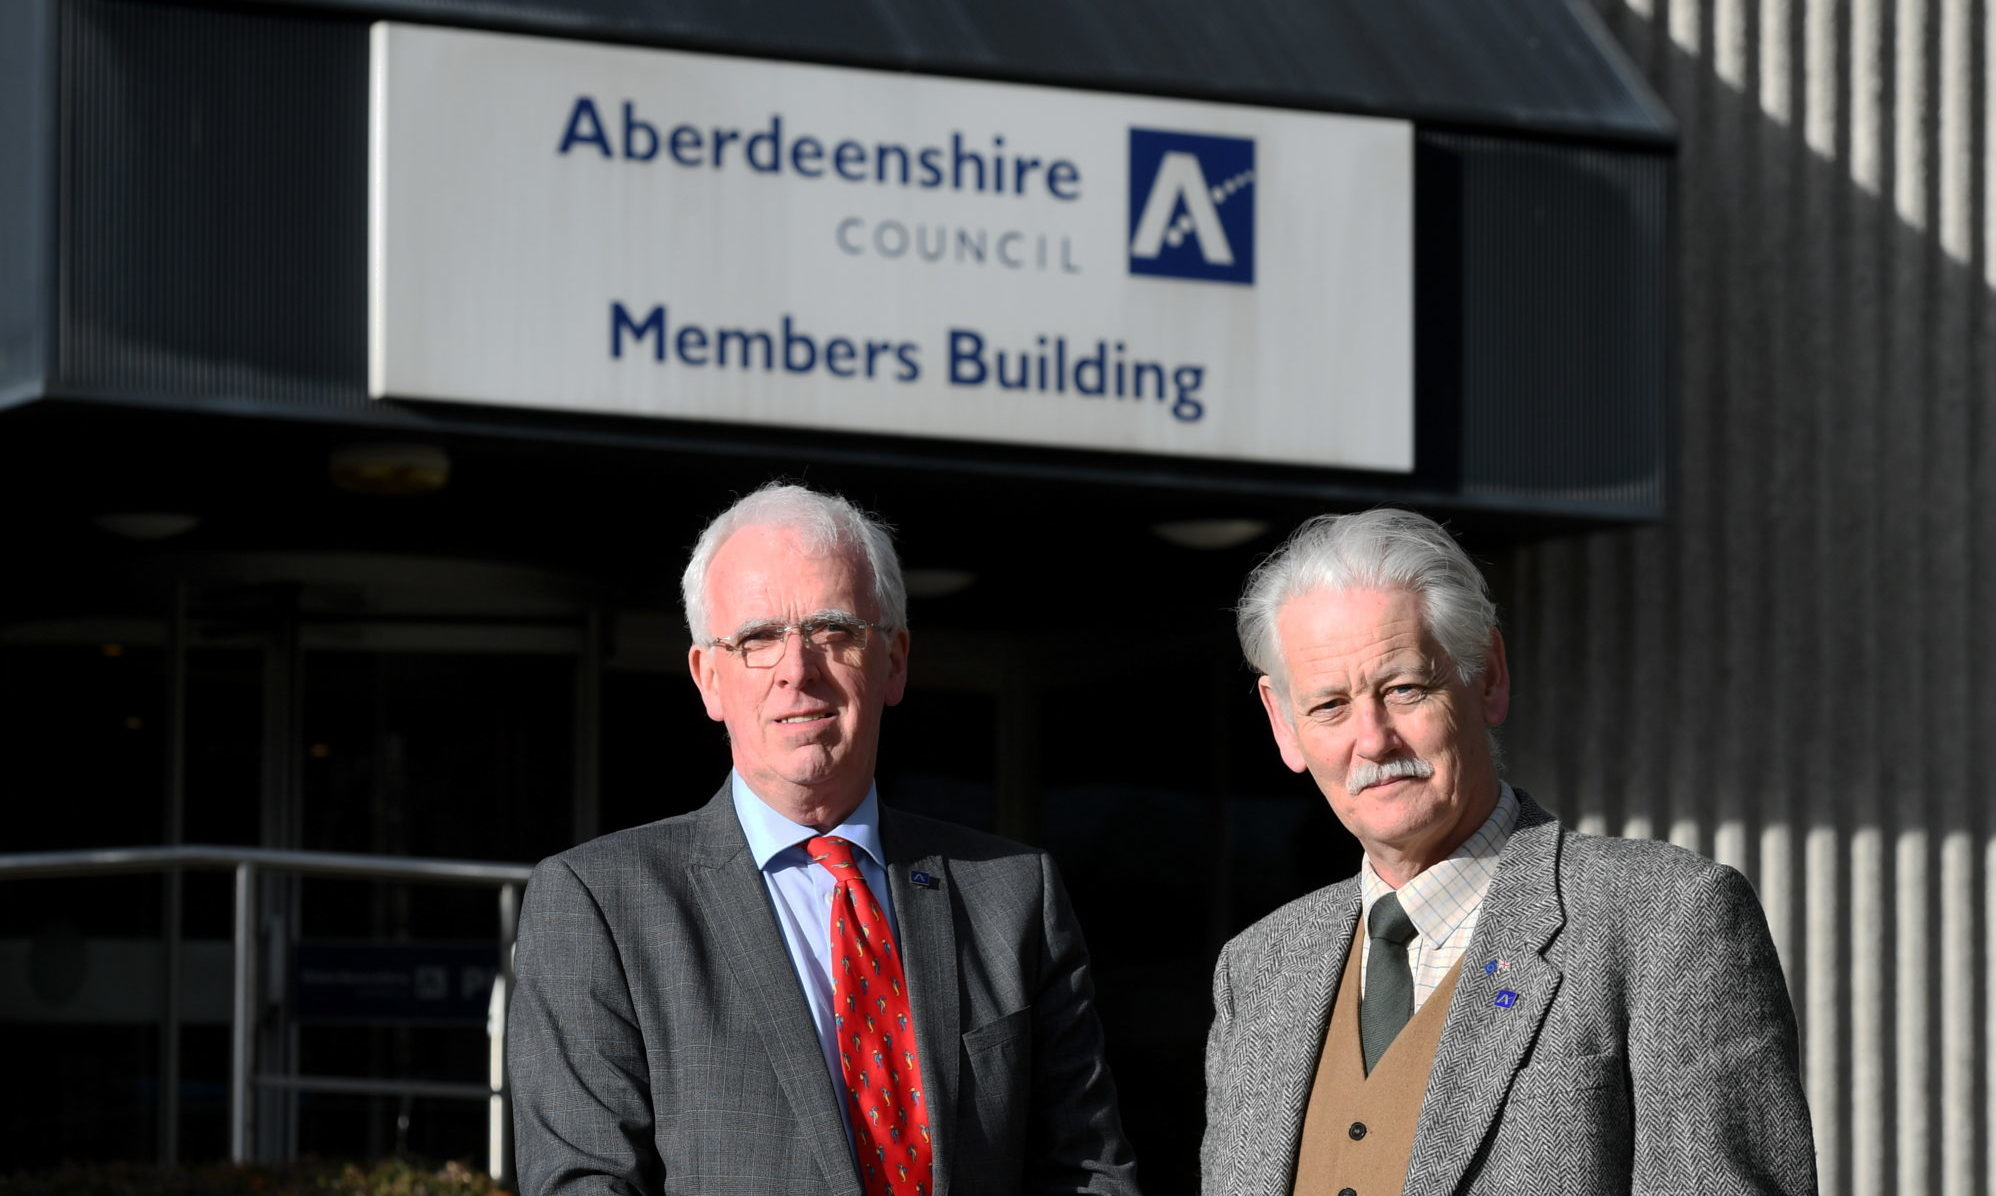 Aberdeenshire Council Leader Jim Gifford (left) and Deputy Leader Peter Argyll